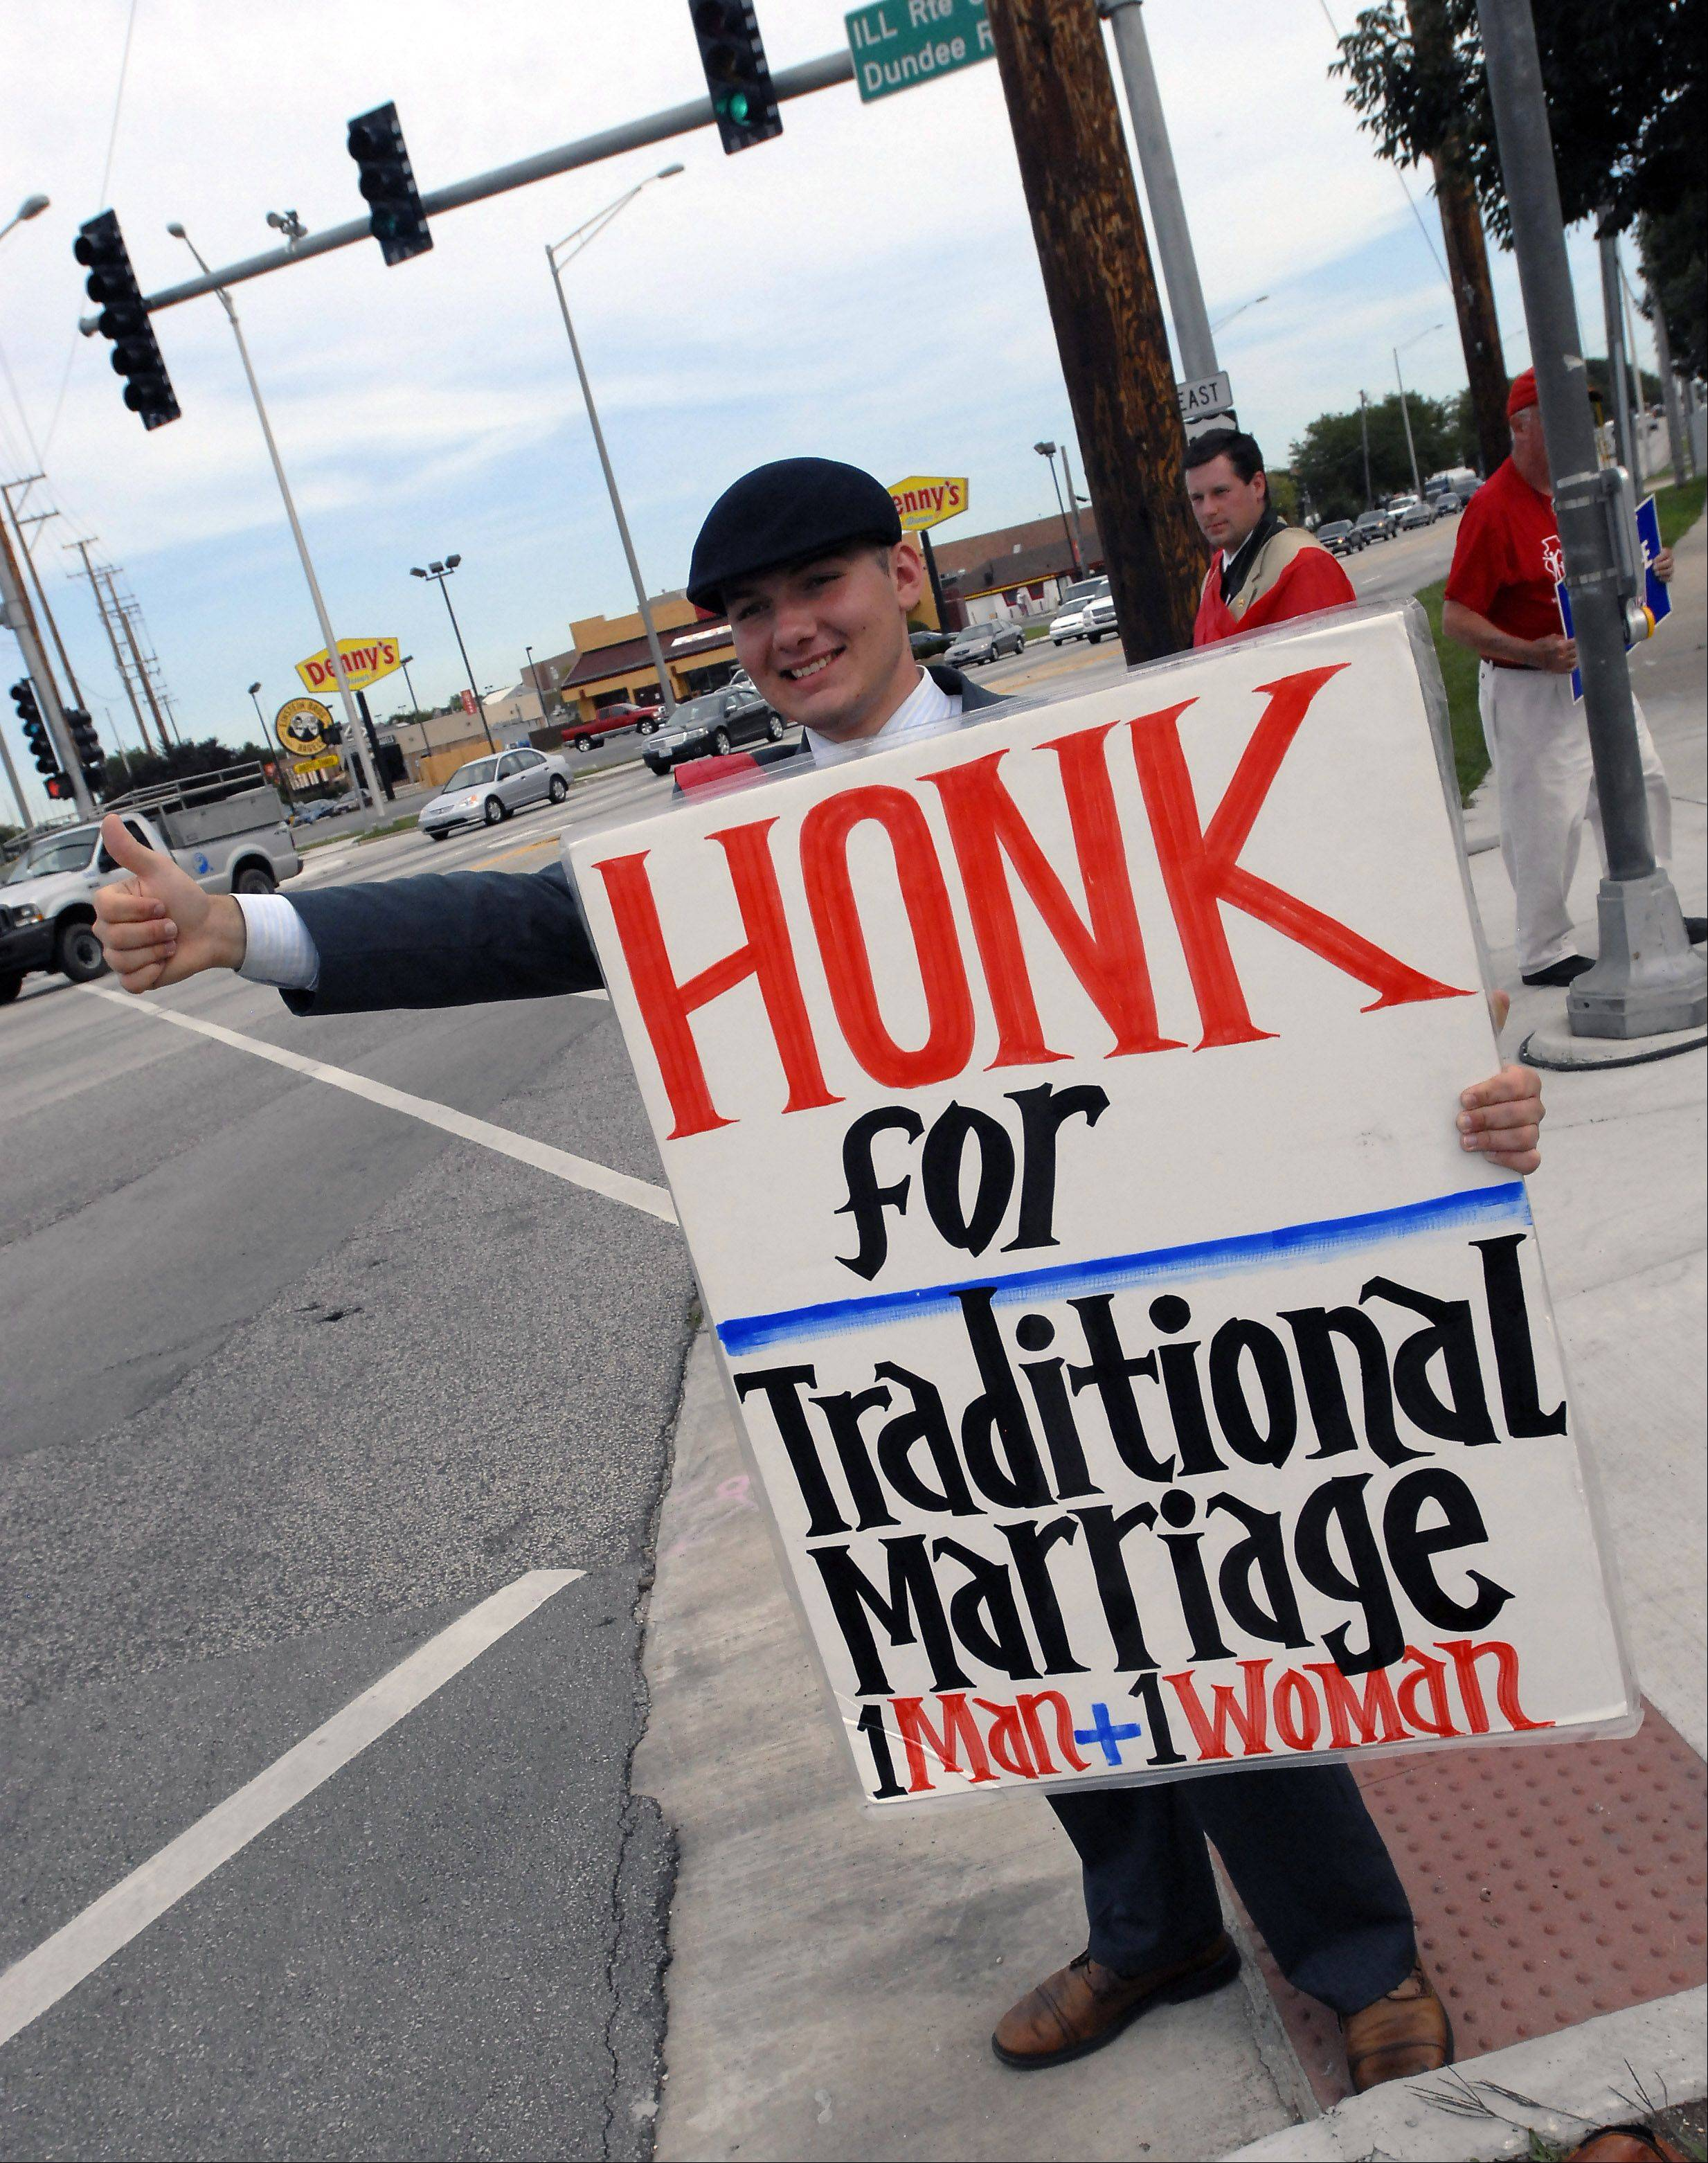 William Stover, a member of the American Society for the Defense of Tradition, Family, and Property, and a resident of Gettysburg, Pa., protests against gay marriage Friday at the intersection of Rand and Dundee roads in Palatine. The group has about 700 members throughout the nation and across college campuses.